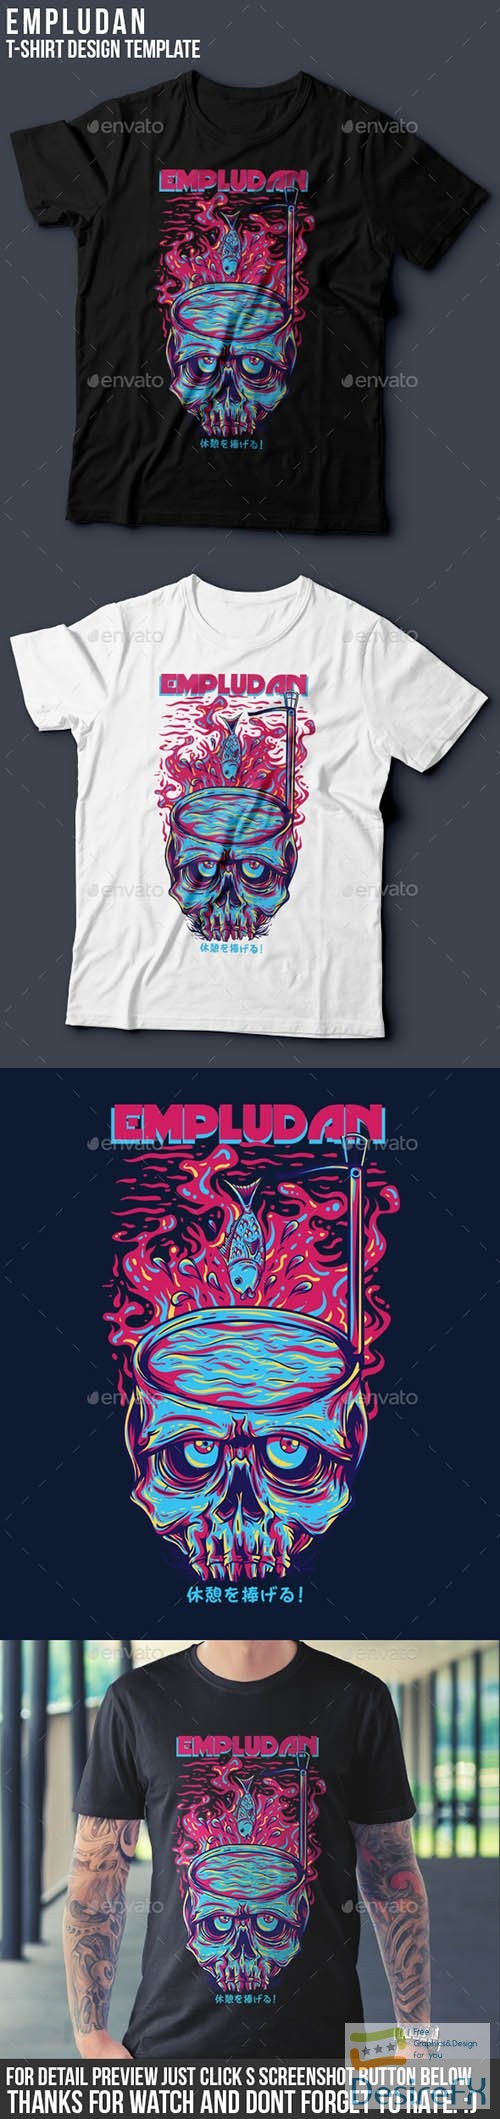 t-shirts-prints - Empludan T-Shirt Design 13199864